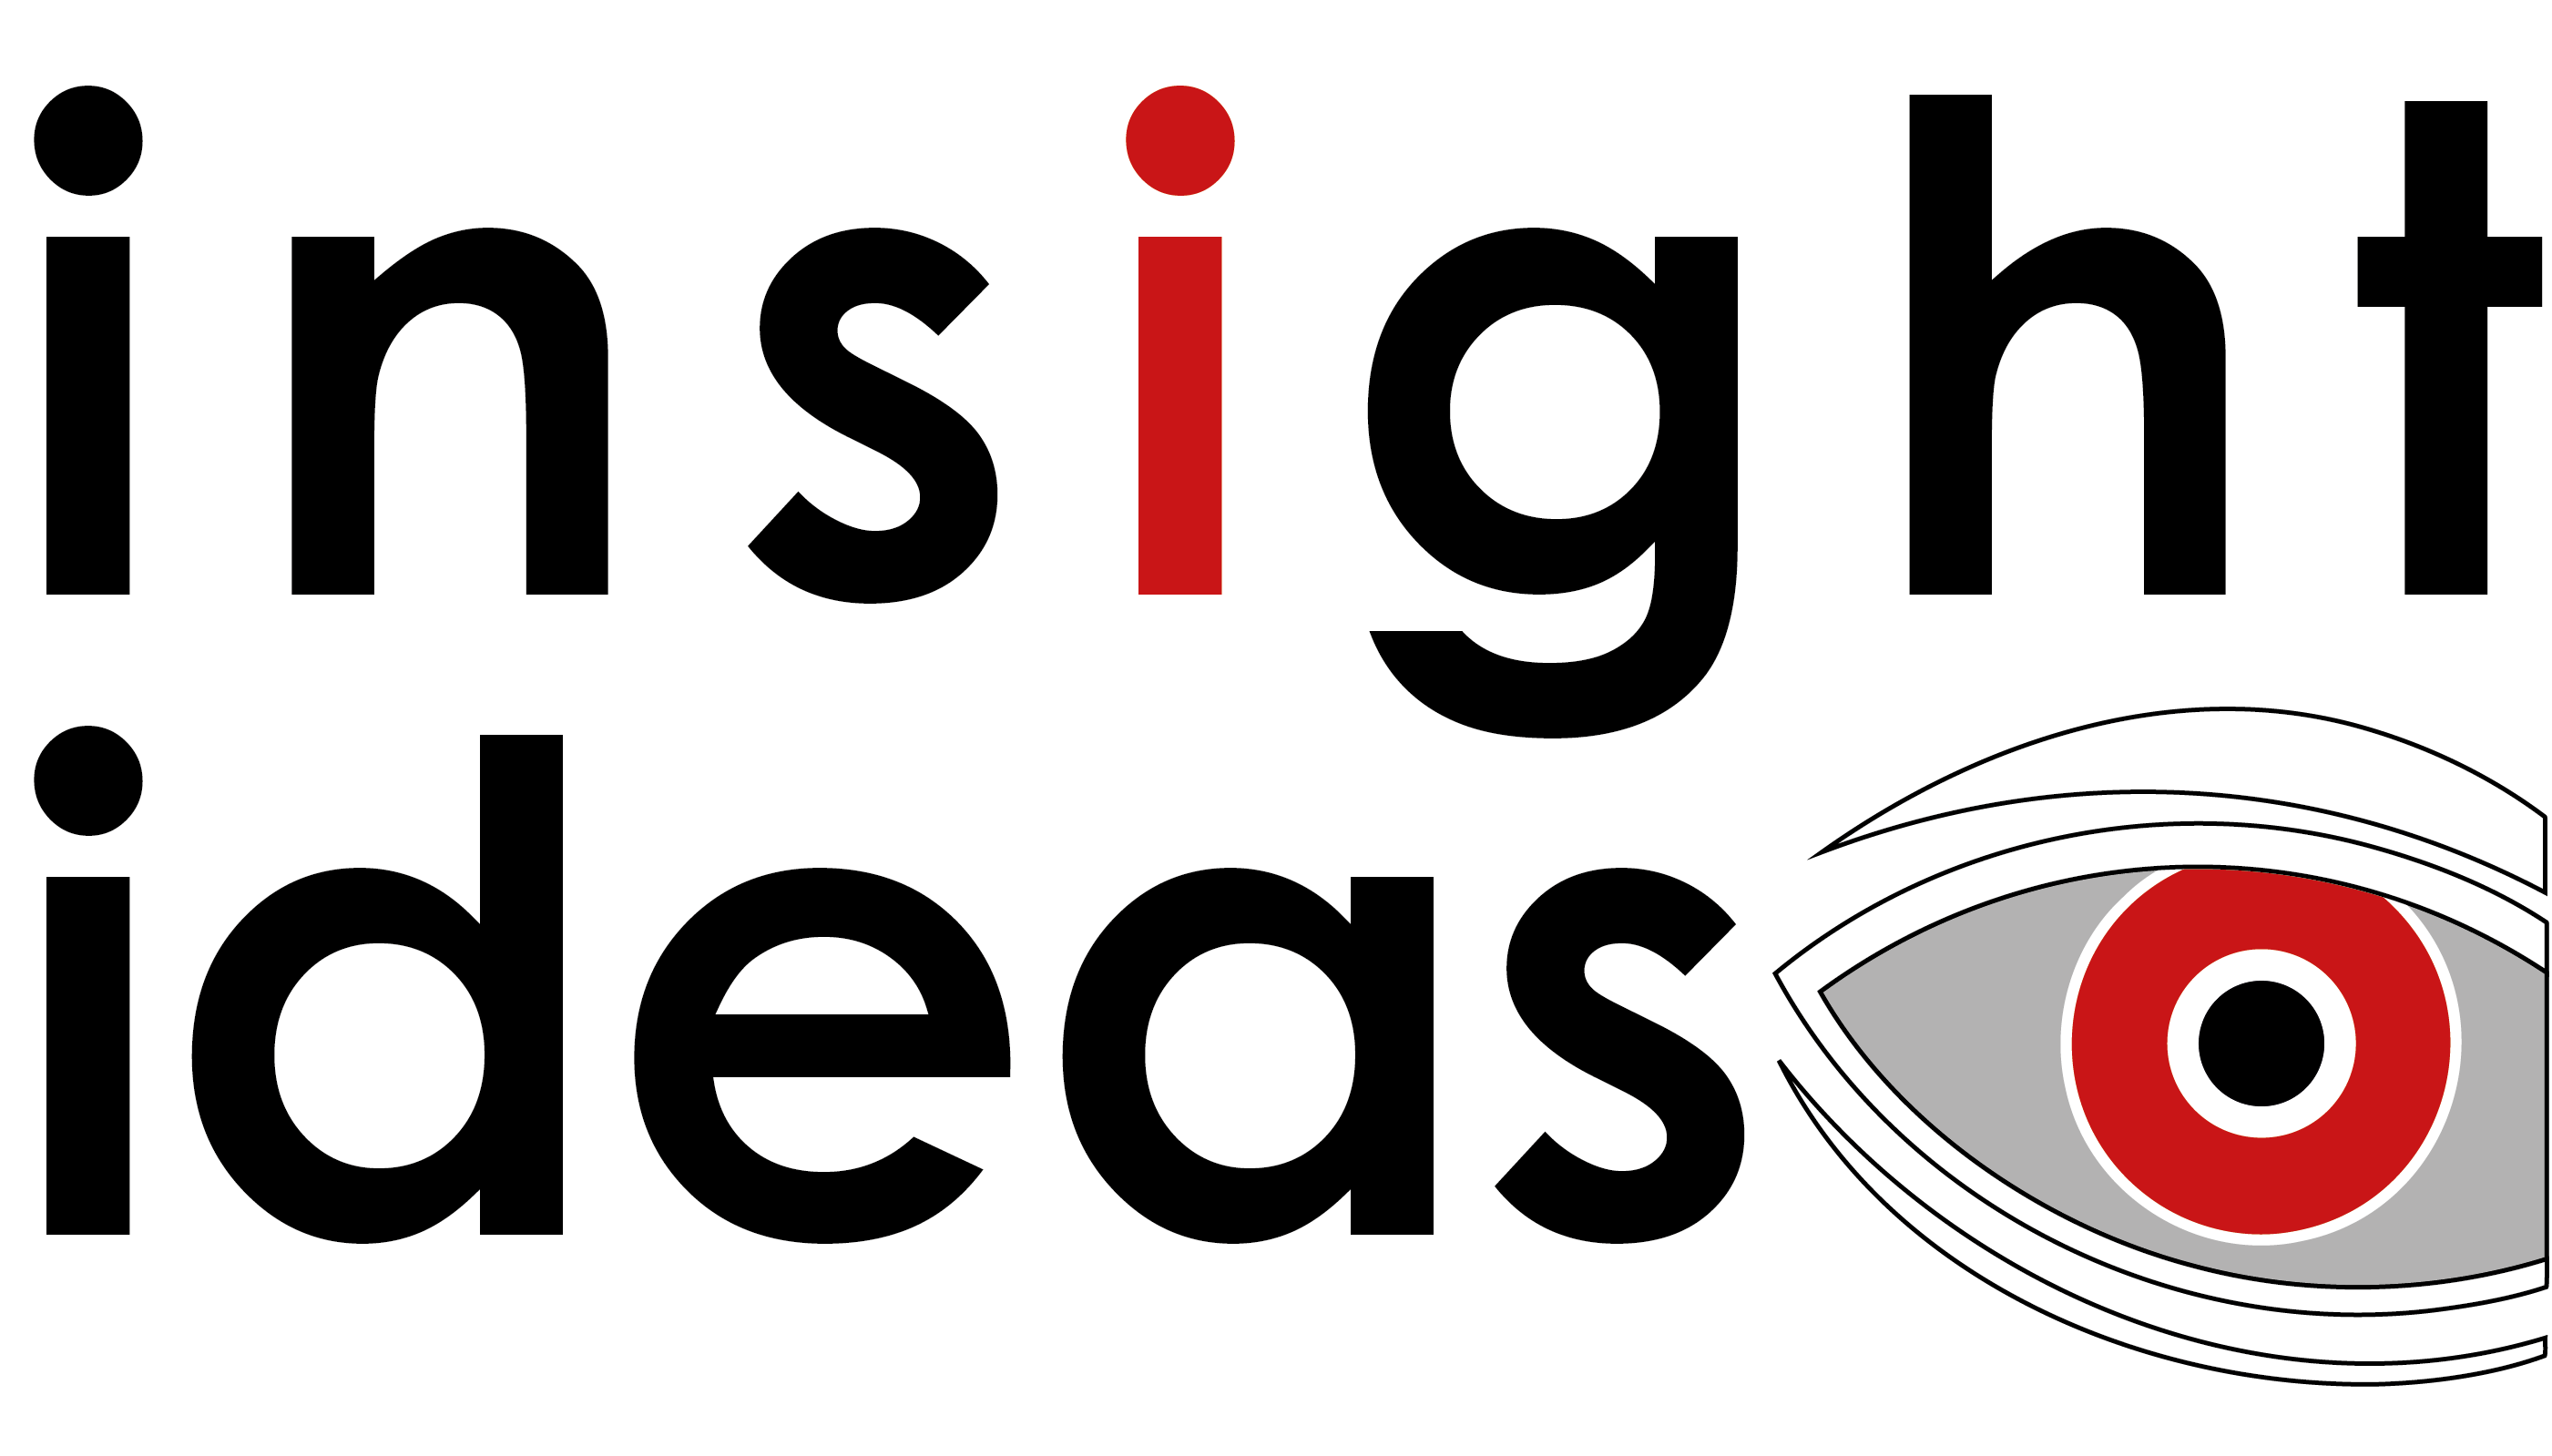 Logo Insight Ideas